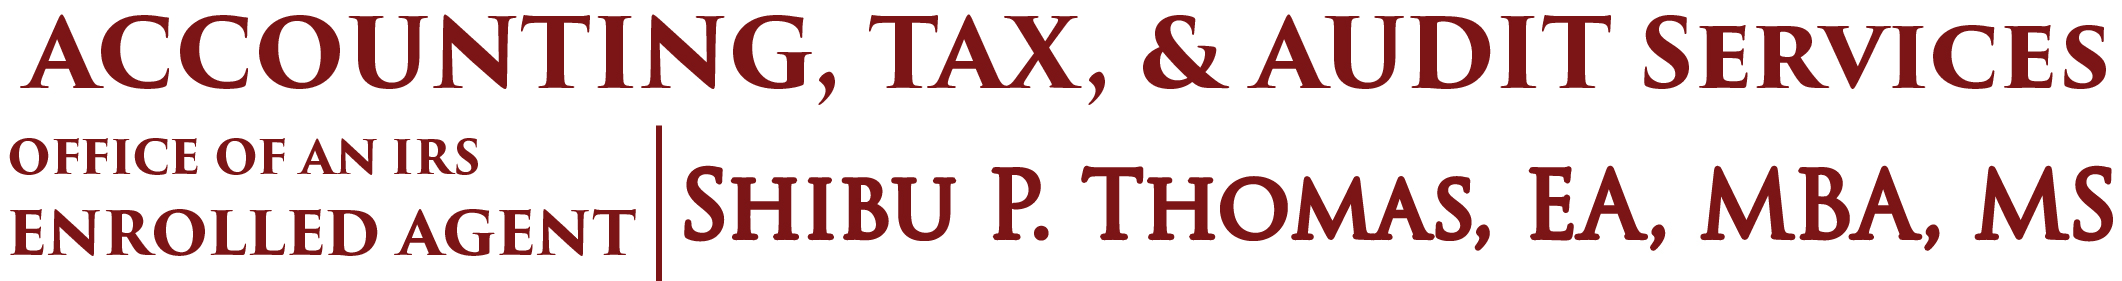 Staten Island, NY Accounting Firm | Business Tax Resolution Page | Accounting, Tax, & Audit Services Shibu P. Thomas, EA, MBA, MS